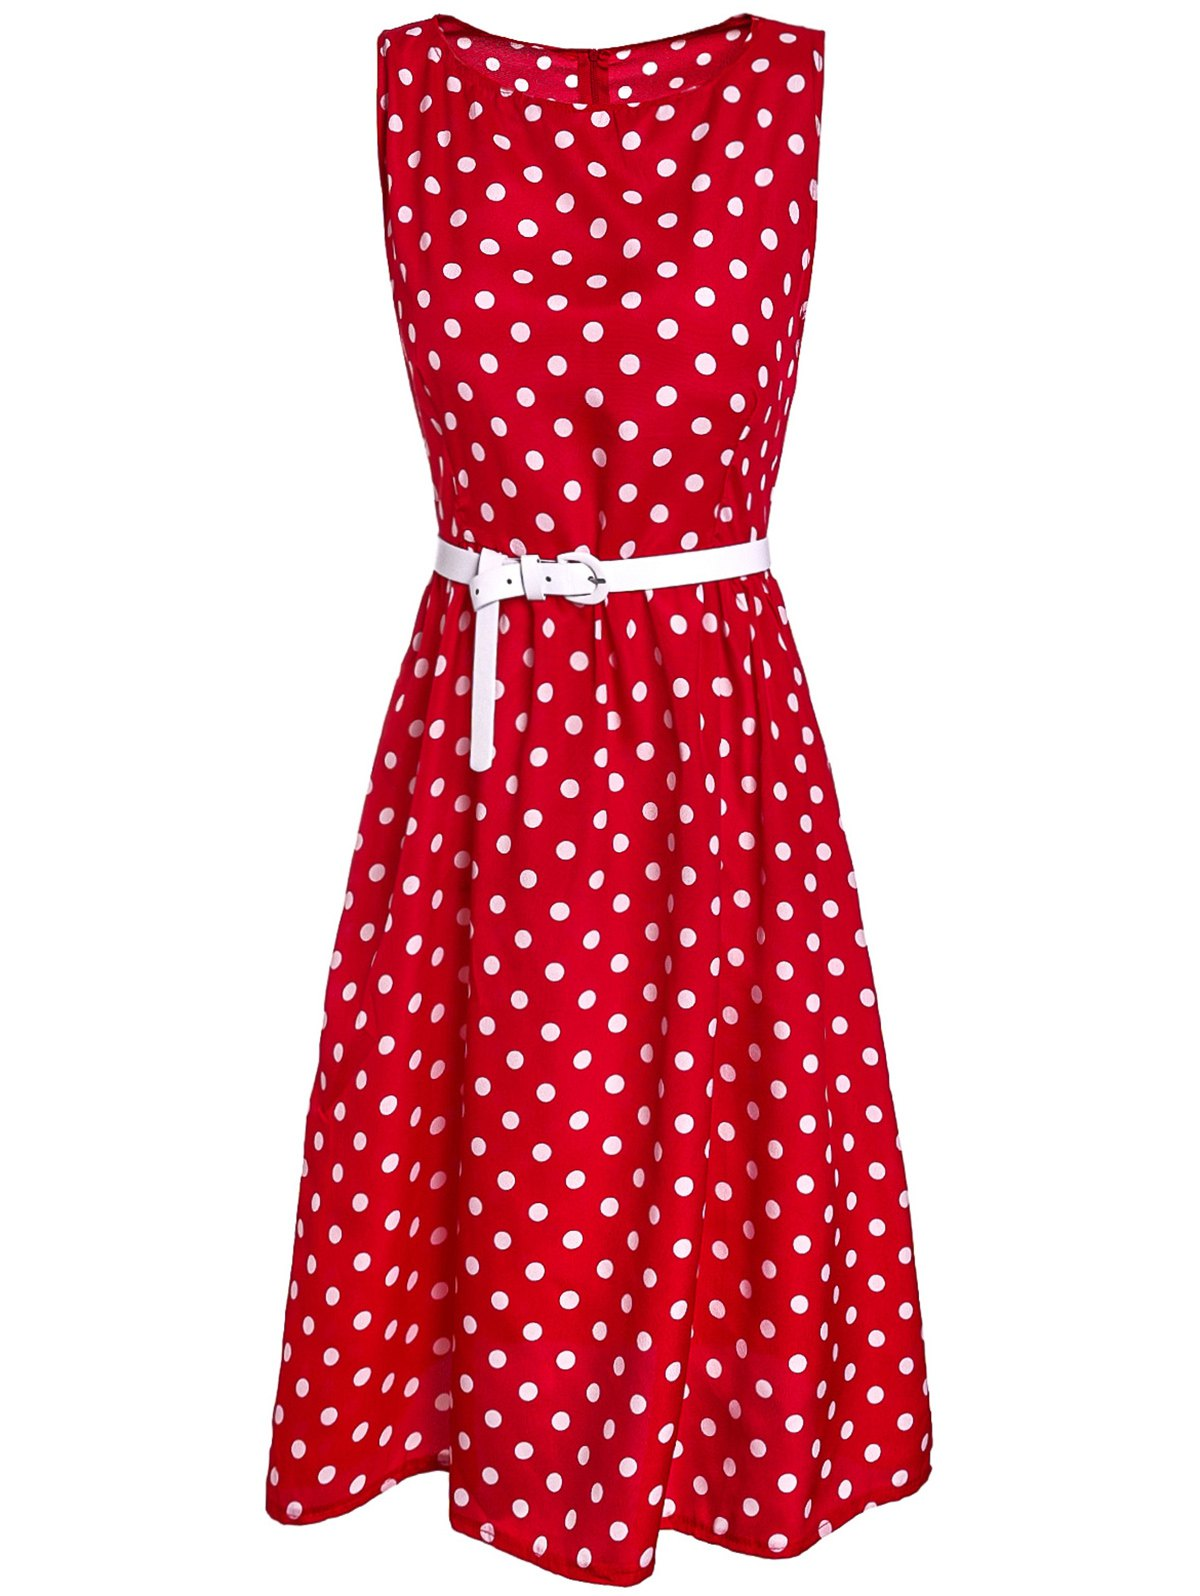 Retro Style Sleeveless Polka Dot Printed Ball Gown Dress For Women - RED M